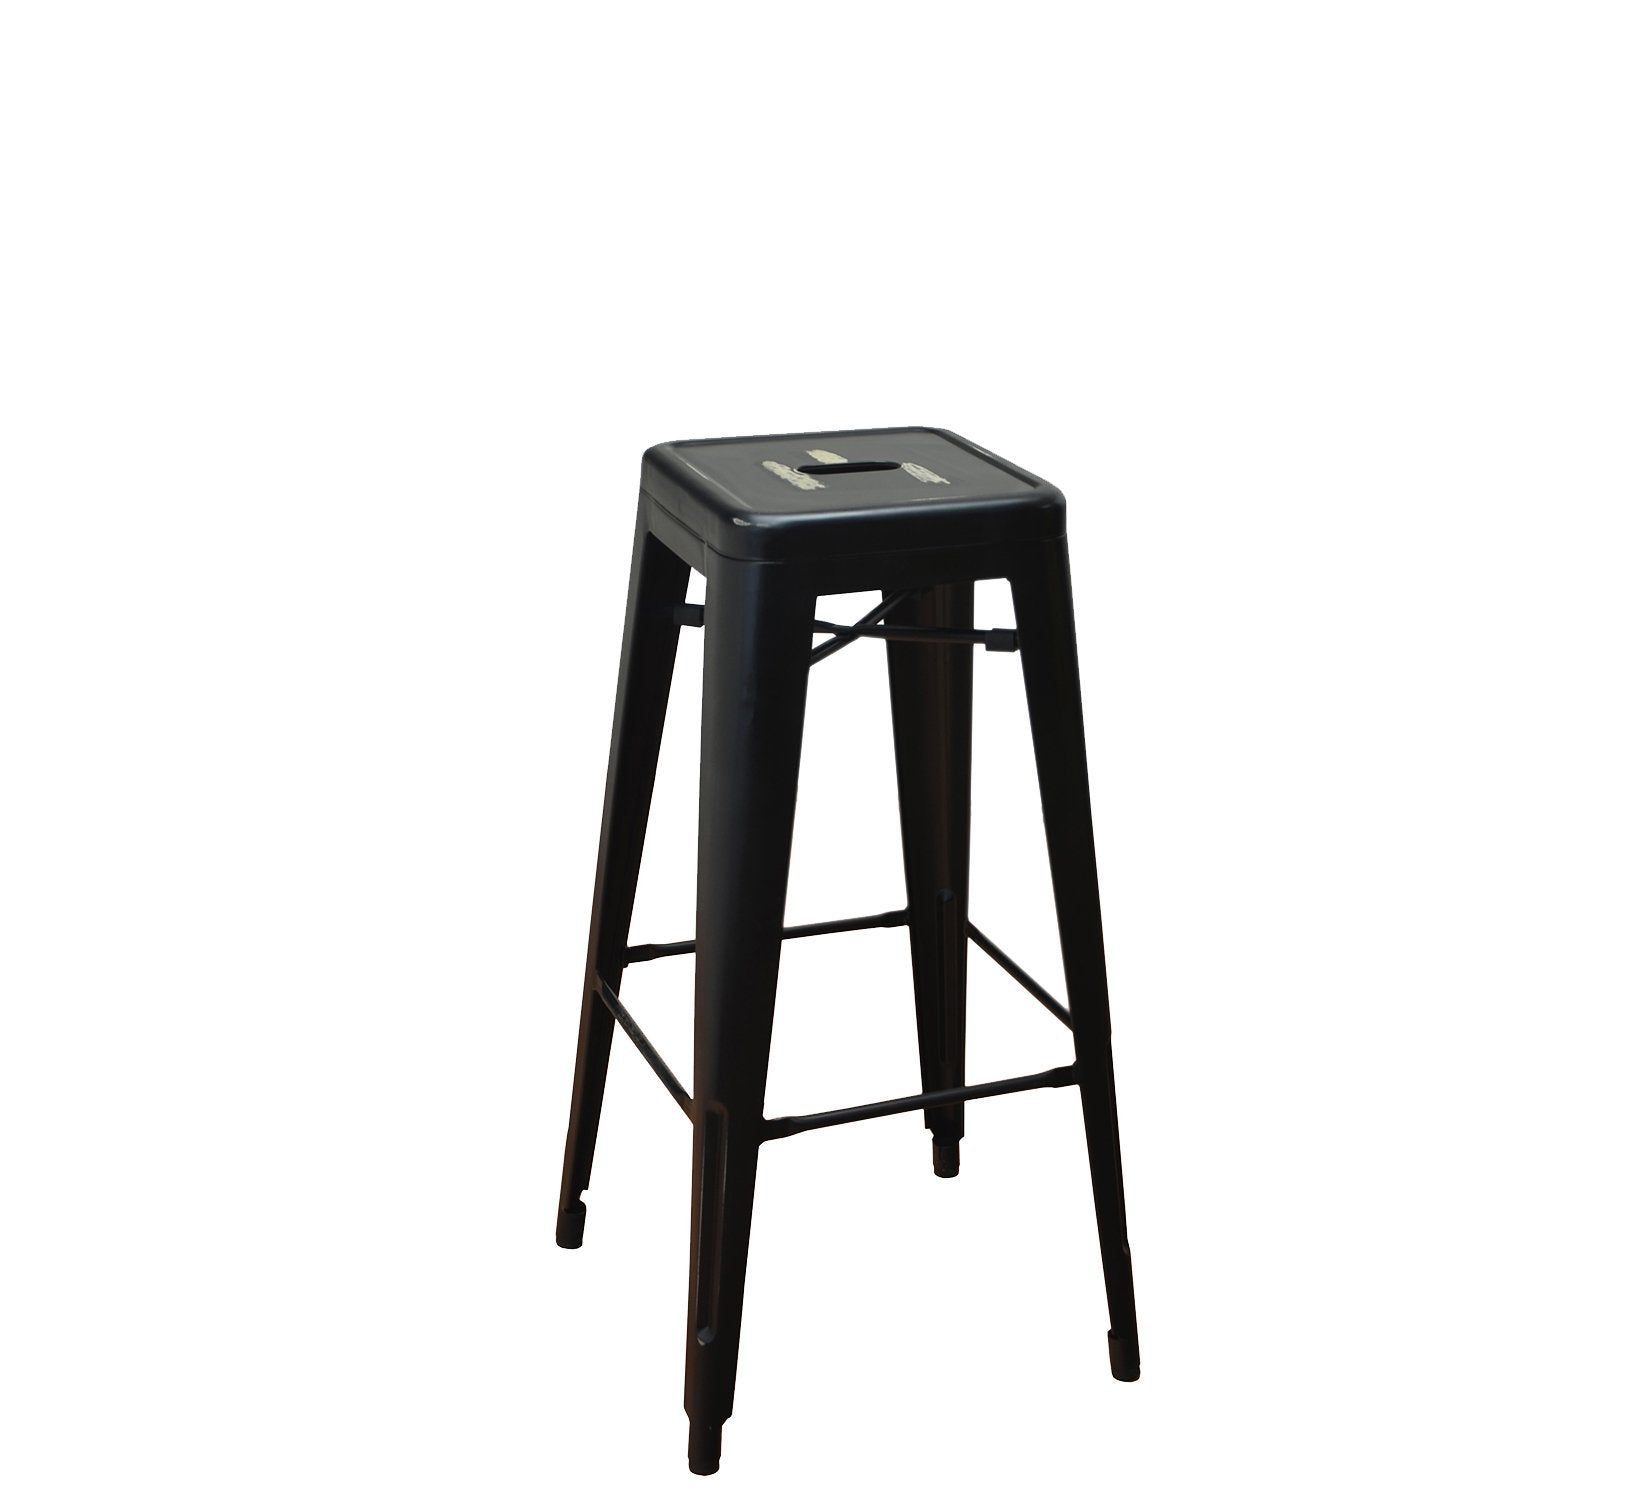 DHC 1281B-BLK Backless Tolix Stool, Antique Black Powder Coating